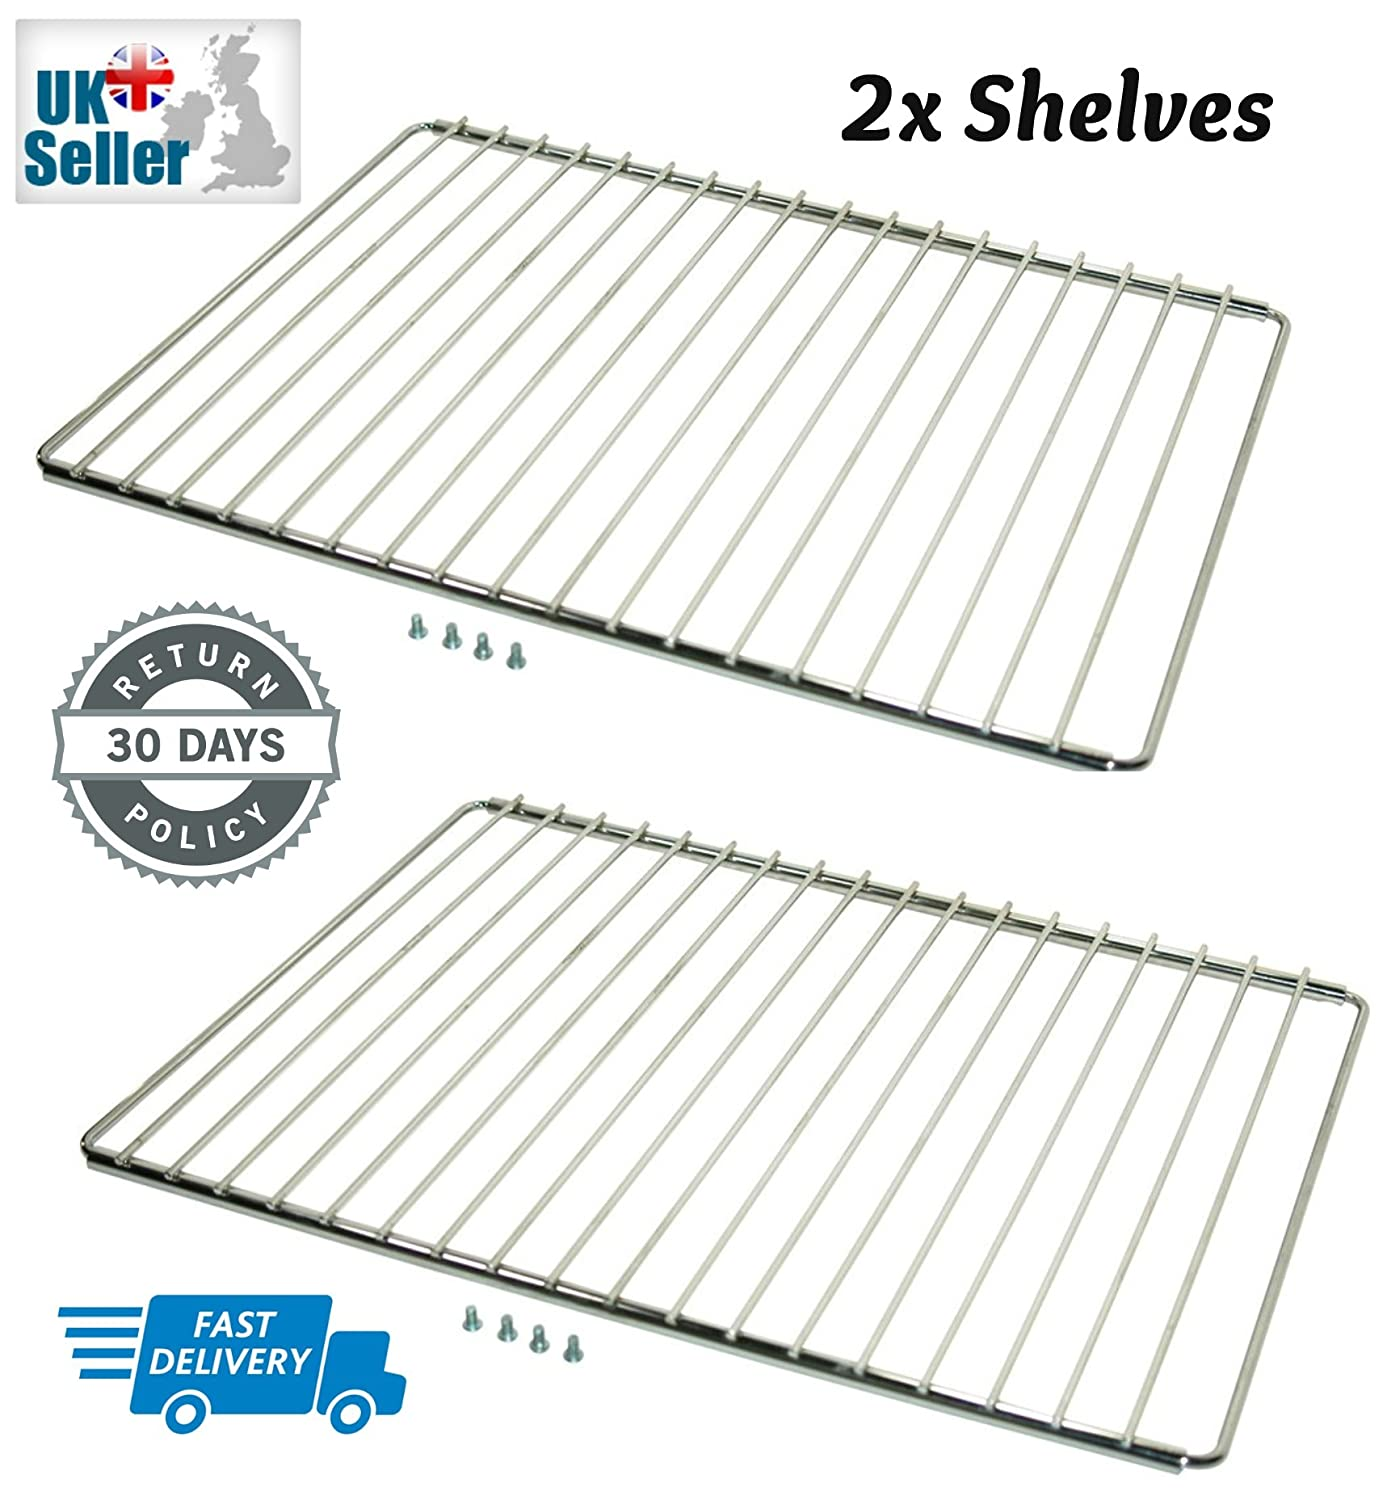 First4Spares Extendable Oven Cooker Shelf Rack (360mm-600mm), 1 Pack containing 2 Shelf Racks CS159W